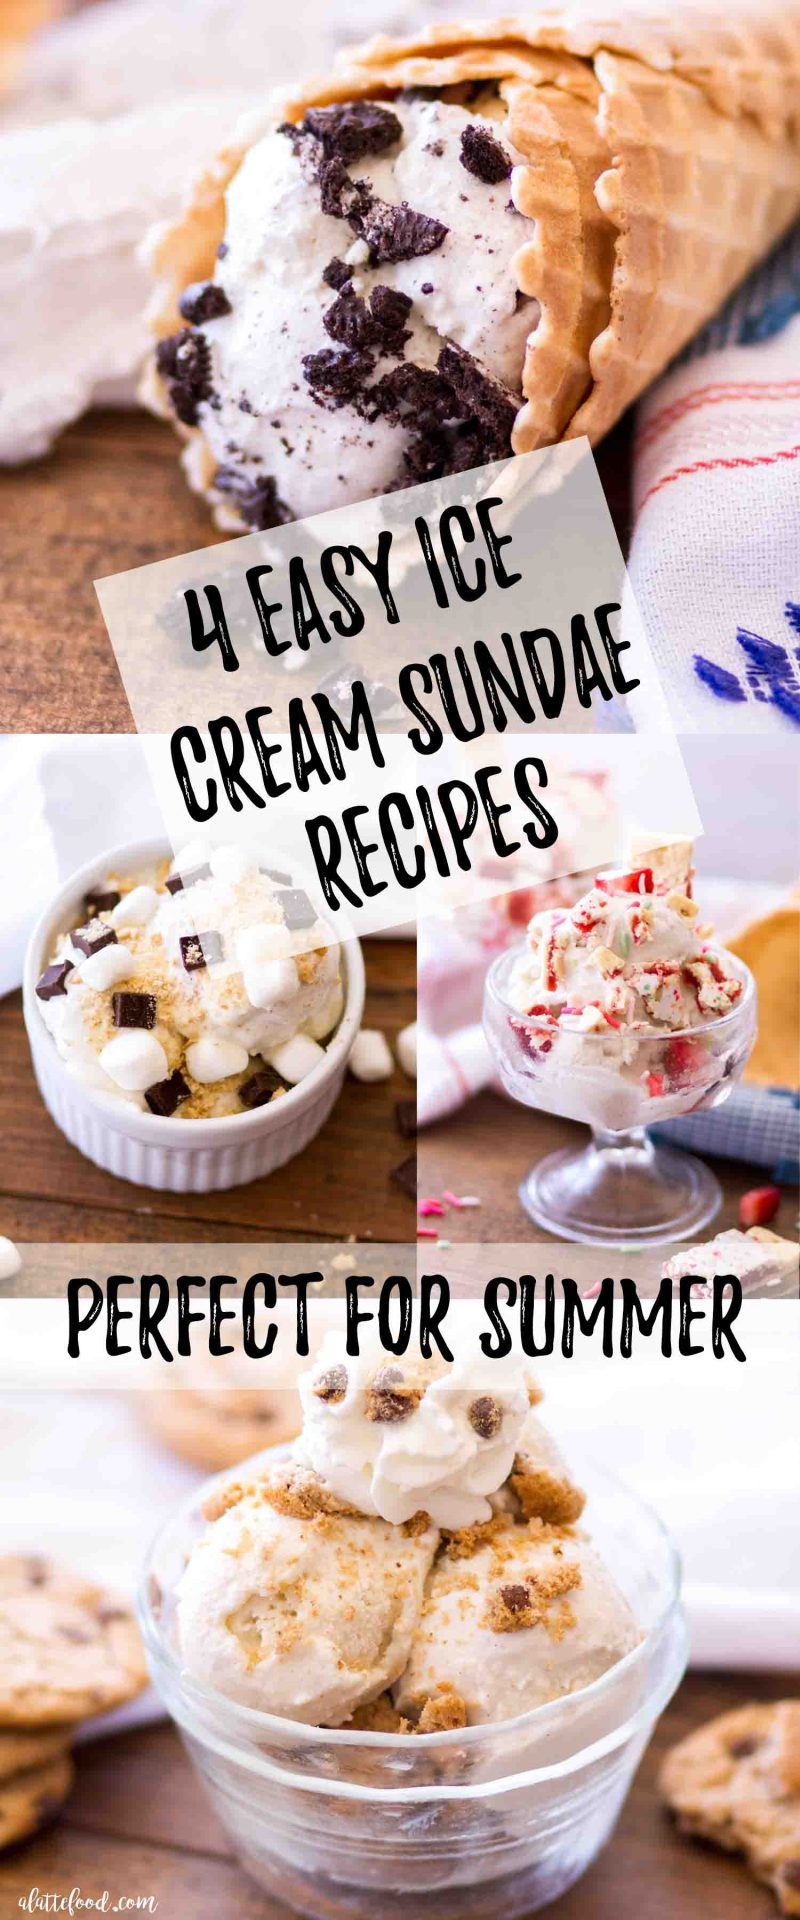 four easy ice cream sundae recipes perfect for summer